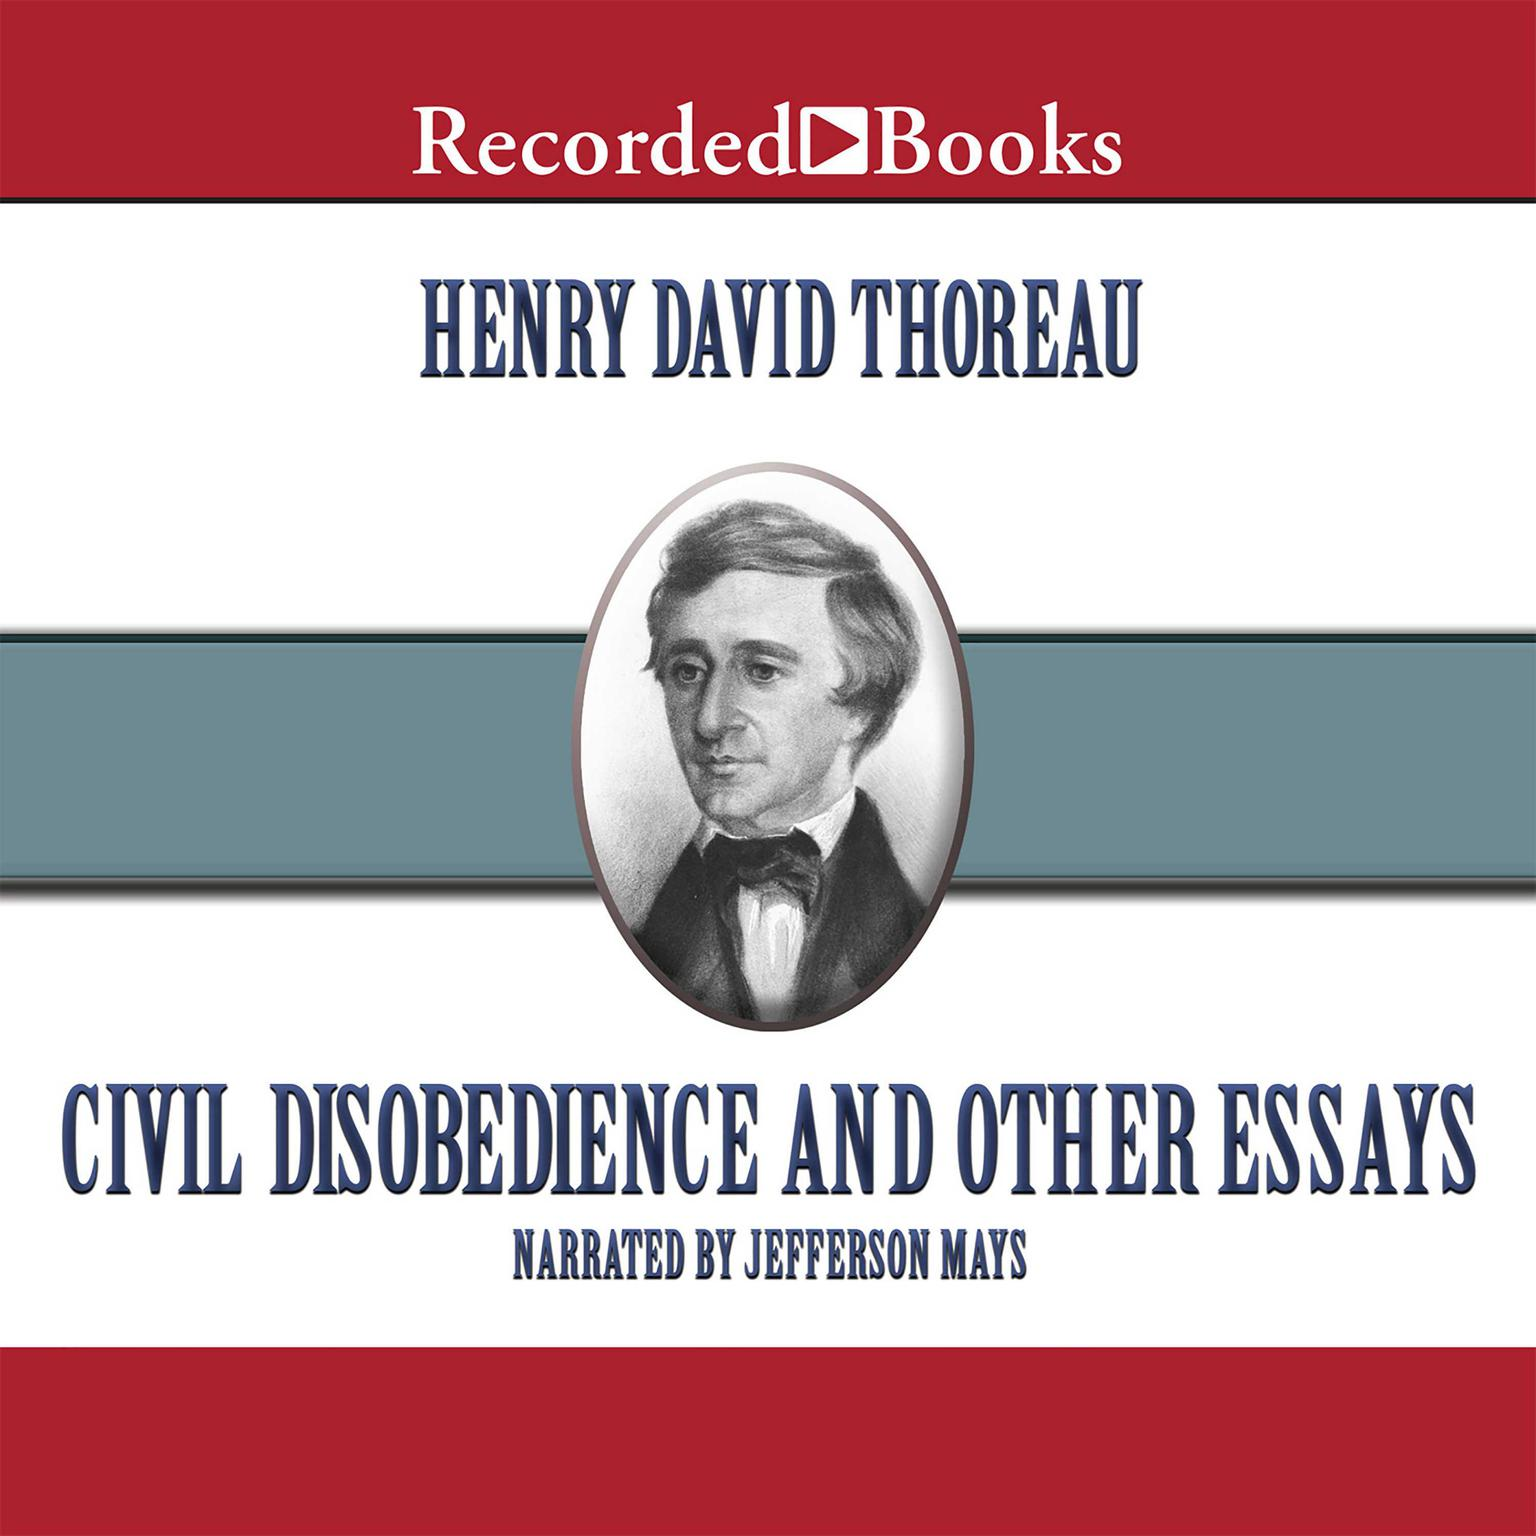 Civil Disobedience  Audiobook  Listen Instantly Civil Disobedience And Other Essays Audiobook By Henry David Thoreau Literature Review Company also Research Paper Essays  What Is The Thesis Of A Research Essay